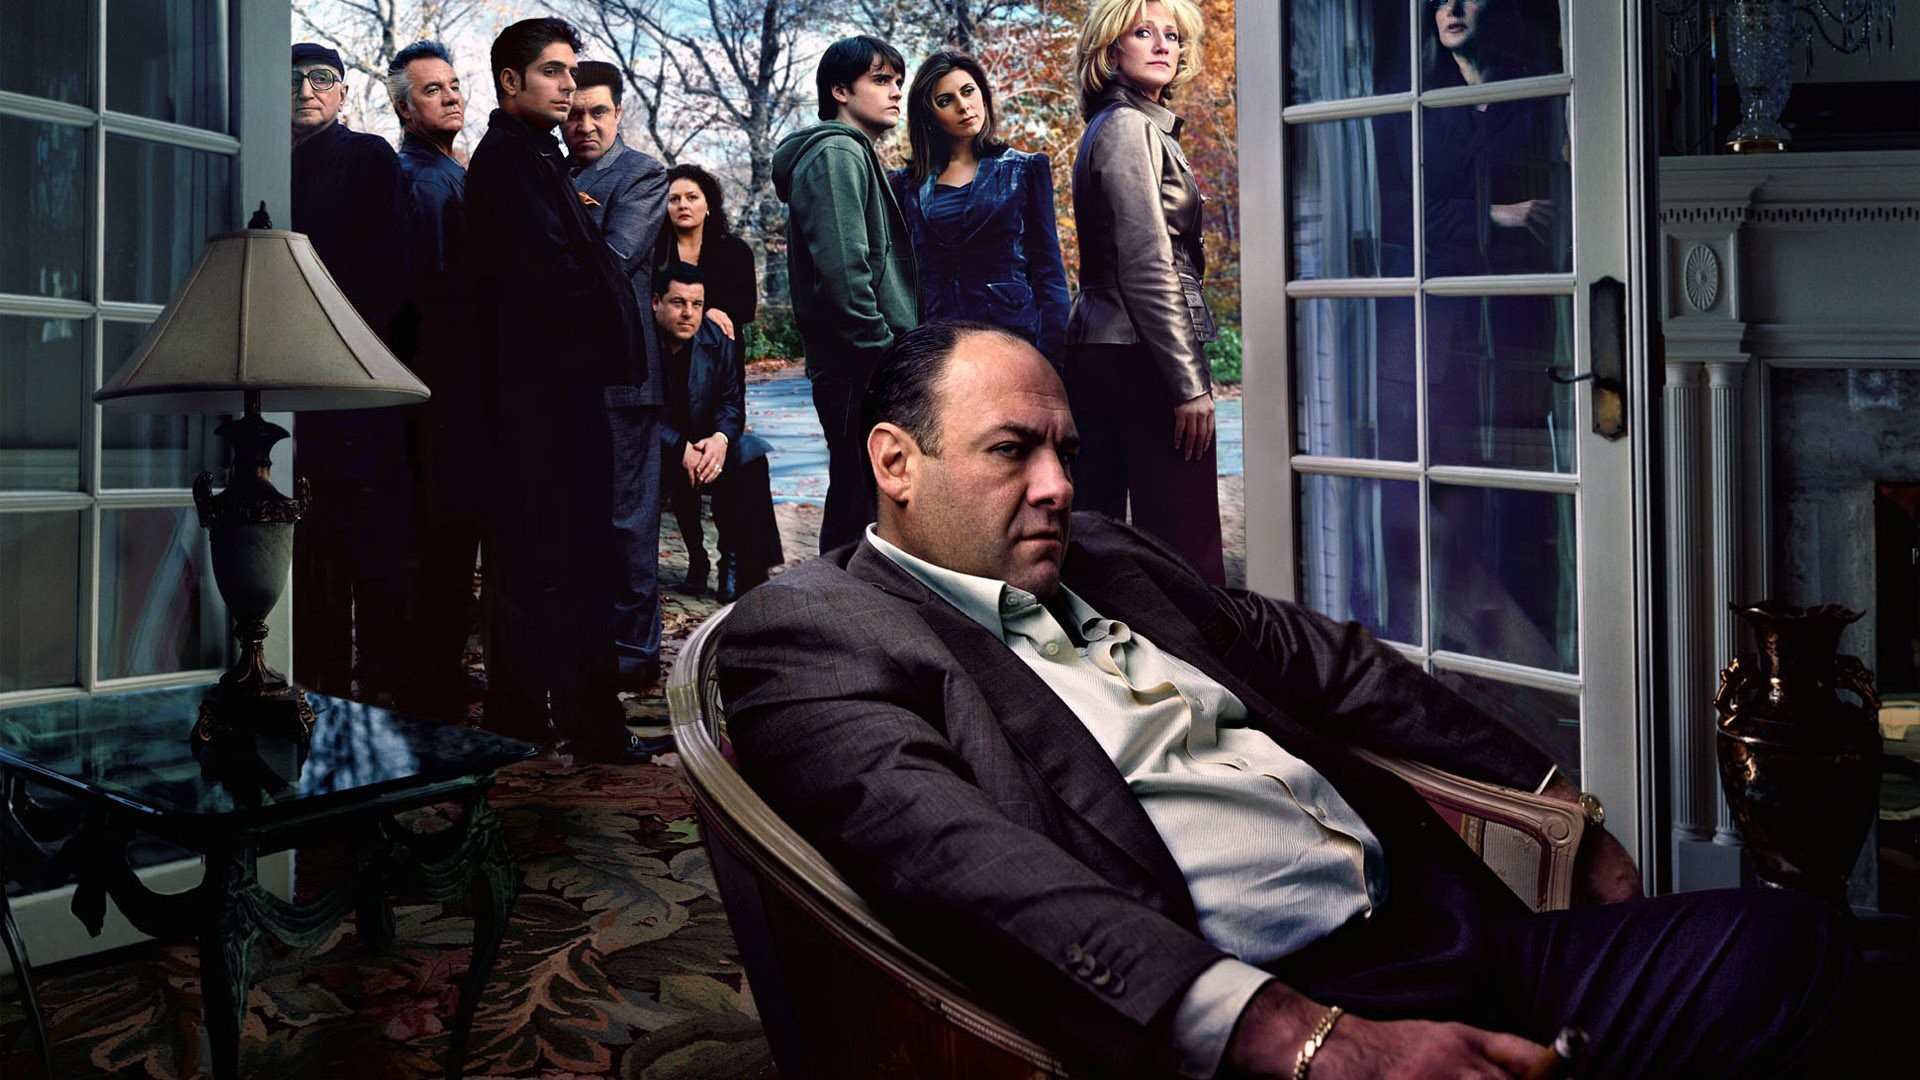 Res: 1920x1080, TV Show - The Sopranos Wallpaper